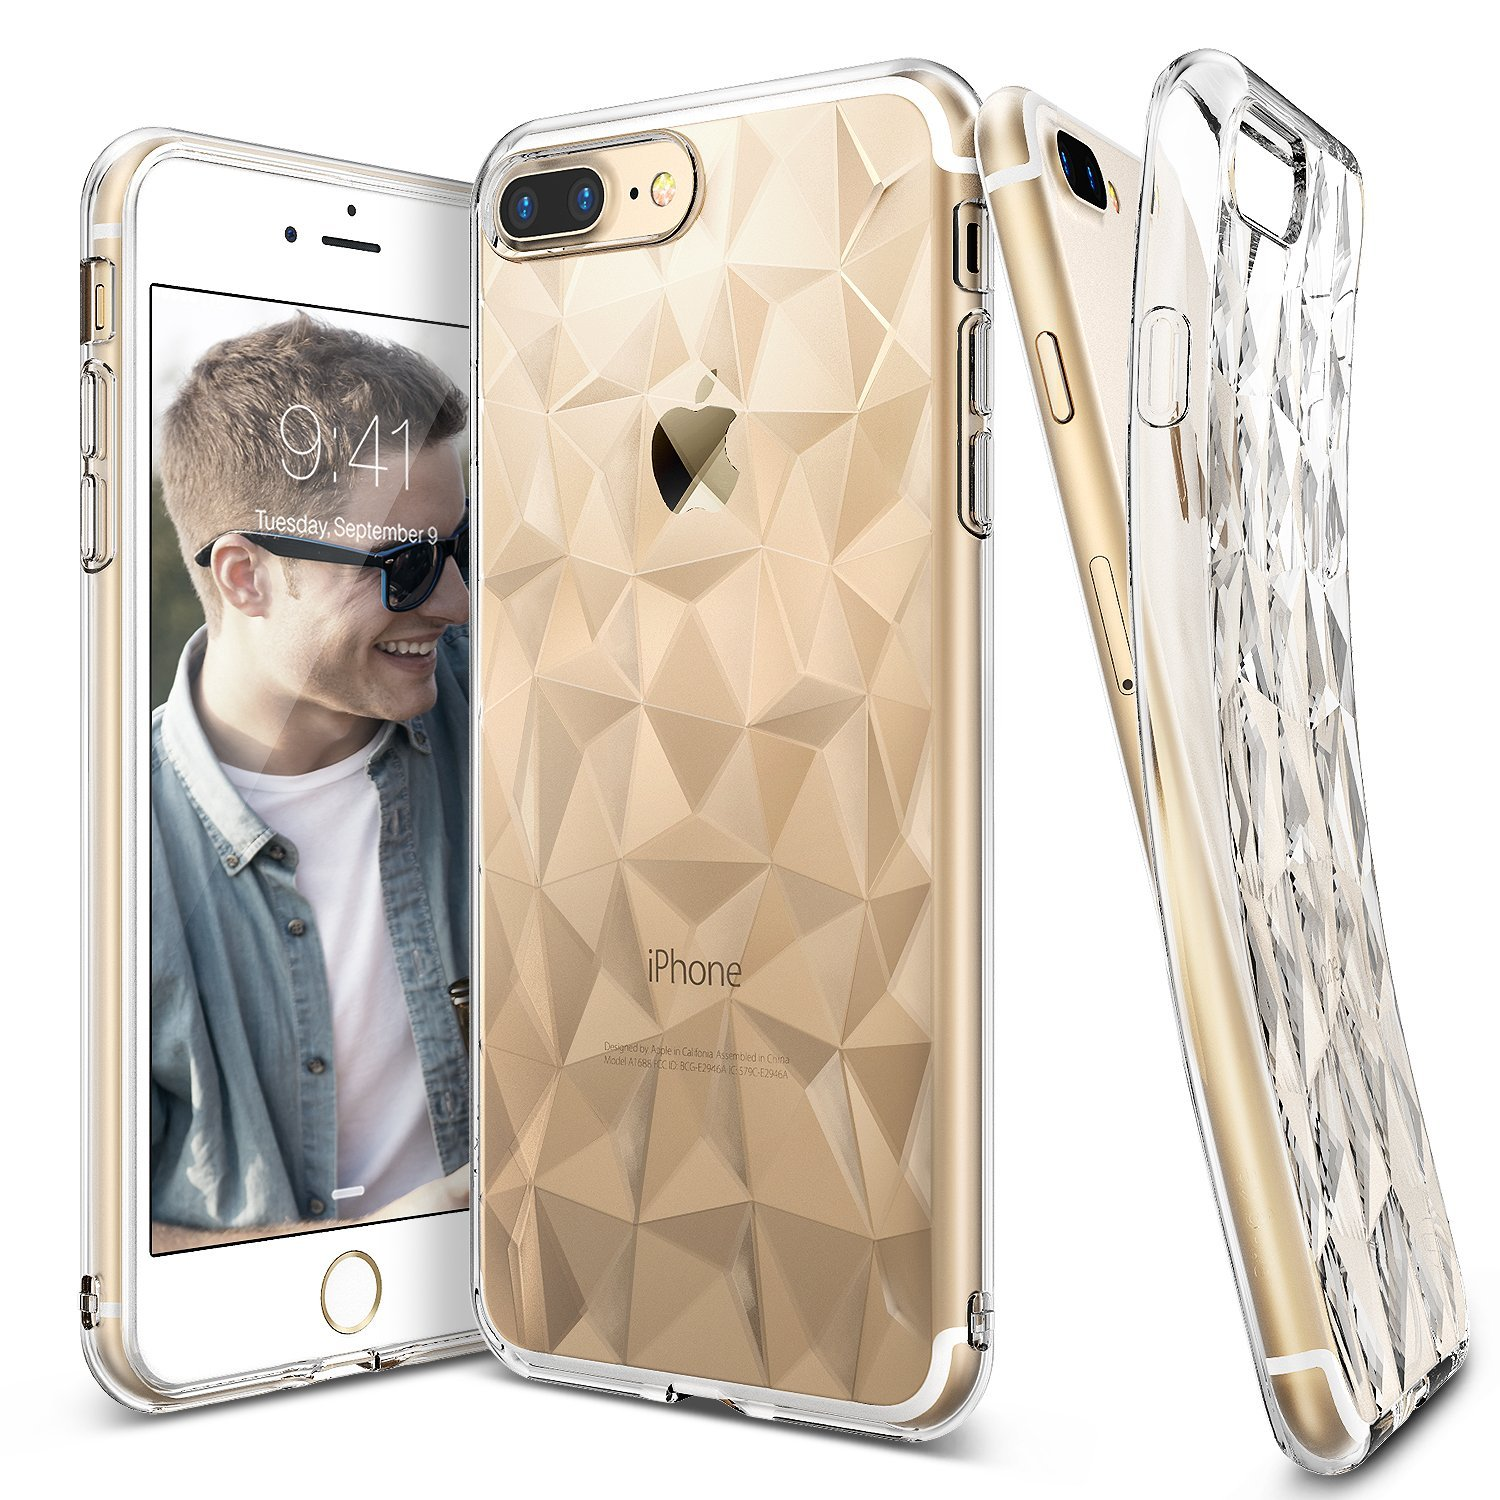 Ringke iPhone 7+ Plus Air Prism Soft Silicone Jelly Case - Clear